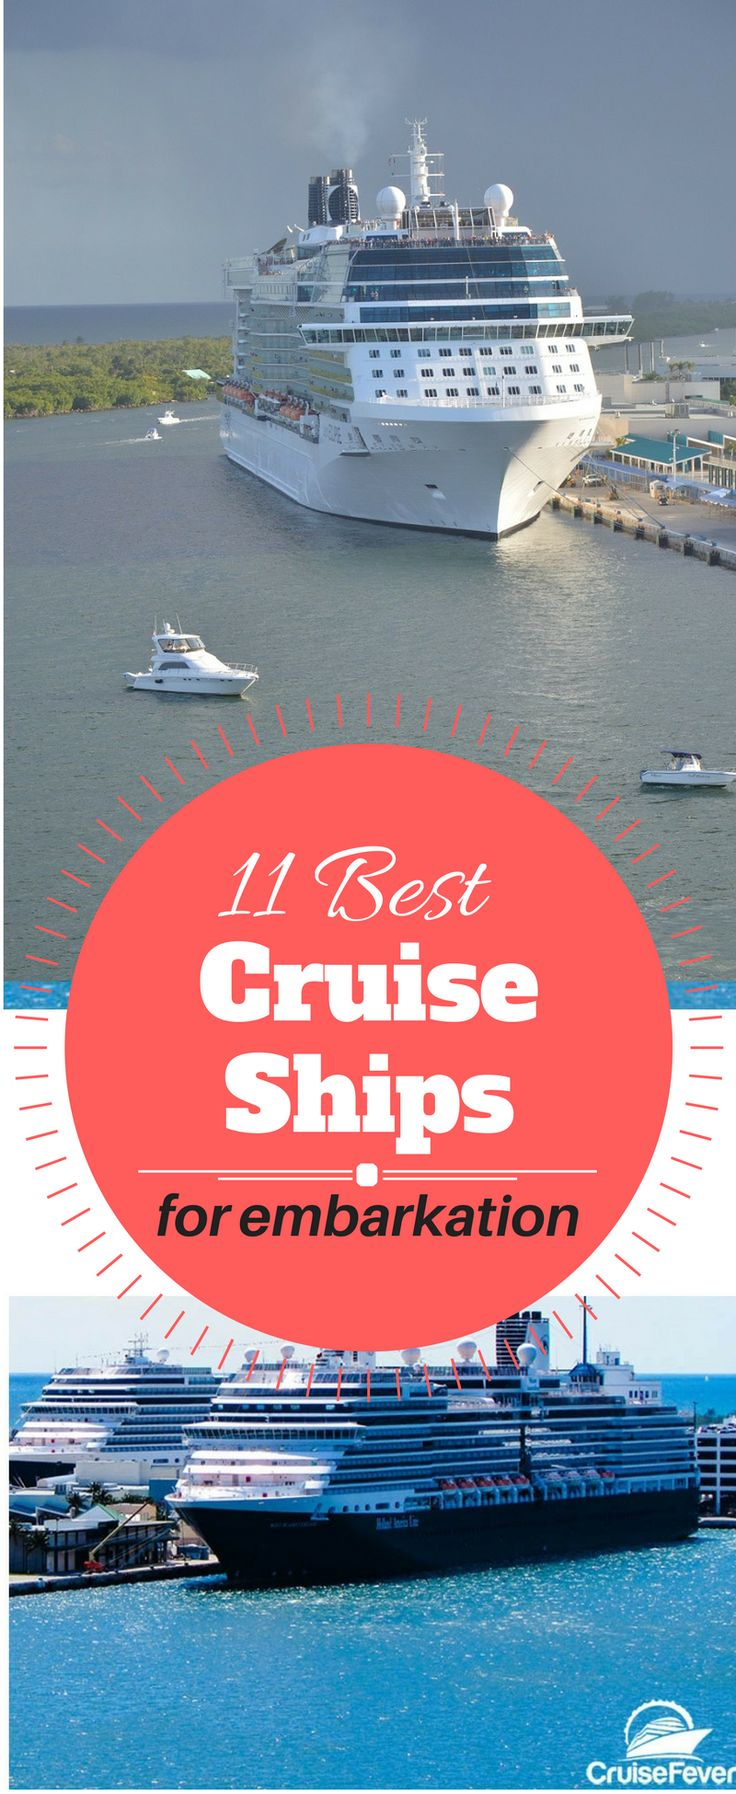 These 5 cruise lines and 11 ships are the most popular for embarking on  your cruise vacation. They consistently earn high ratings for ease of  boarding, short waiting periods in line, check-in and luggage  procedures, and streamlined services to keep passengers happy.